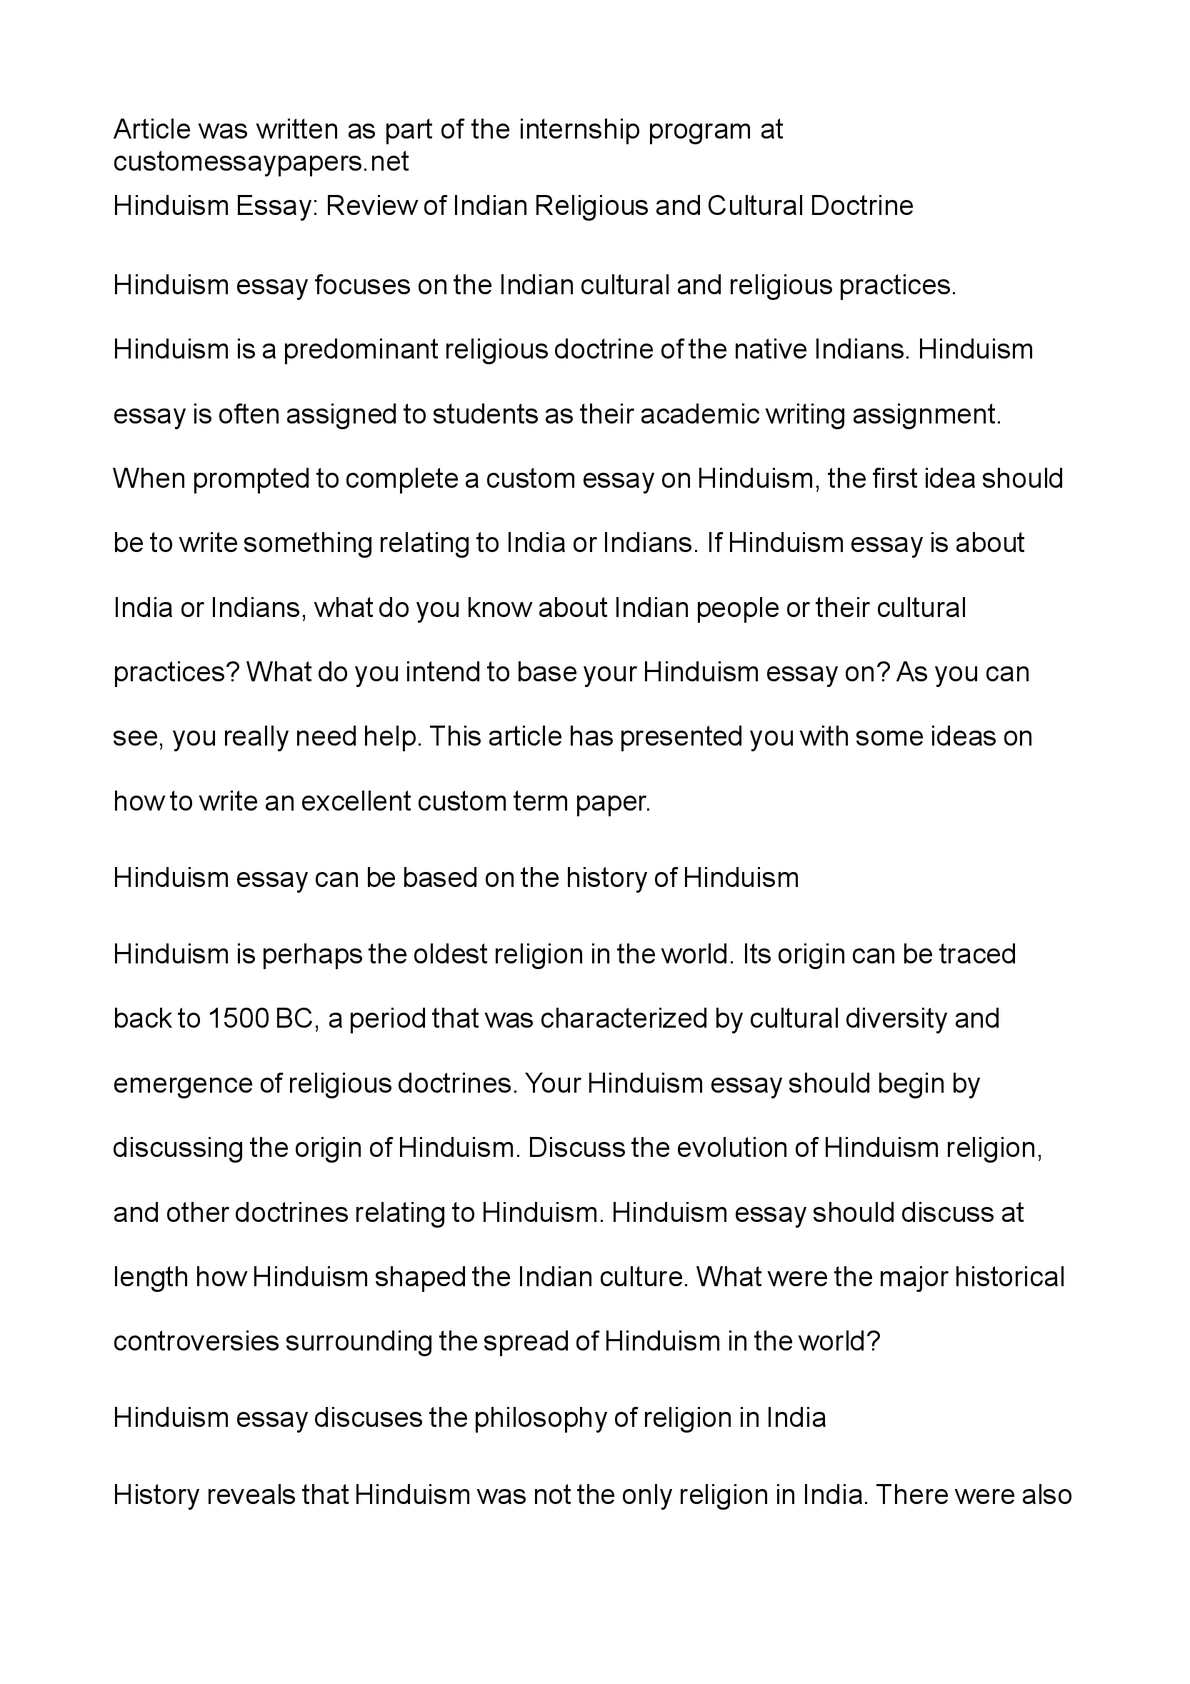 Calamo  Hinduism Essay Review Of Indian Religious And Cultural  Calamo  Hinduism Essay Review Of Indian Religious And Cultural Doctrine Linguistic Assignment Writer also English Essay Story  Writing Expert Help